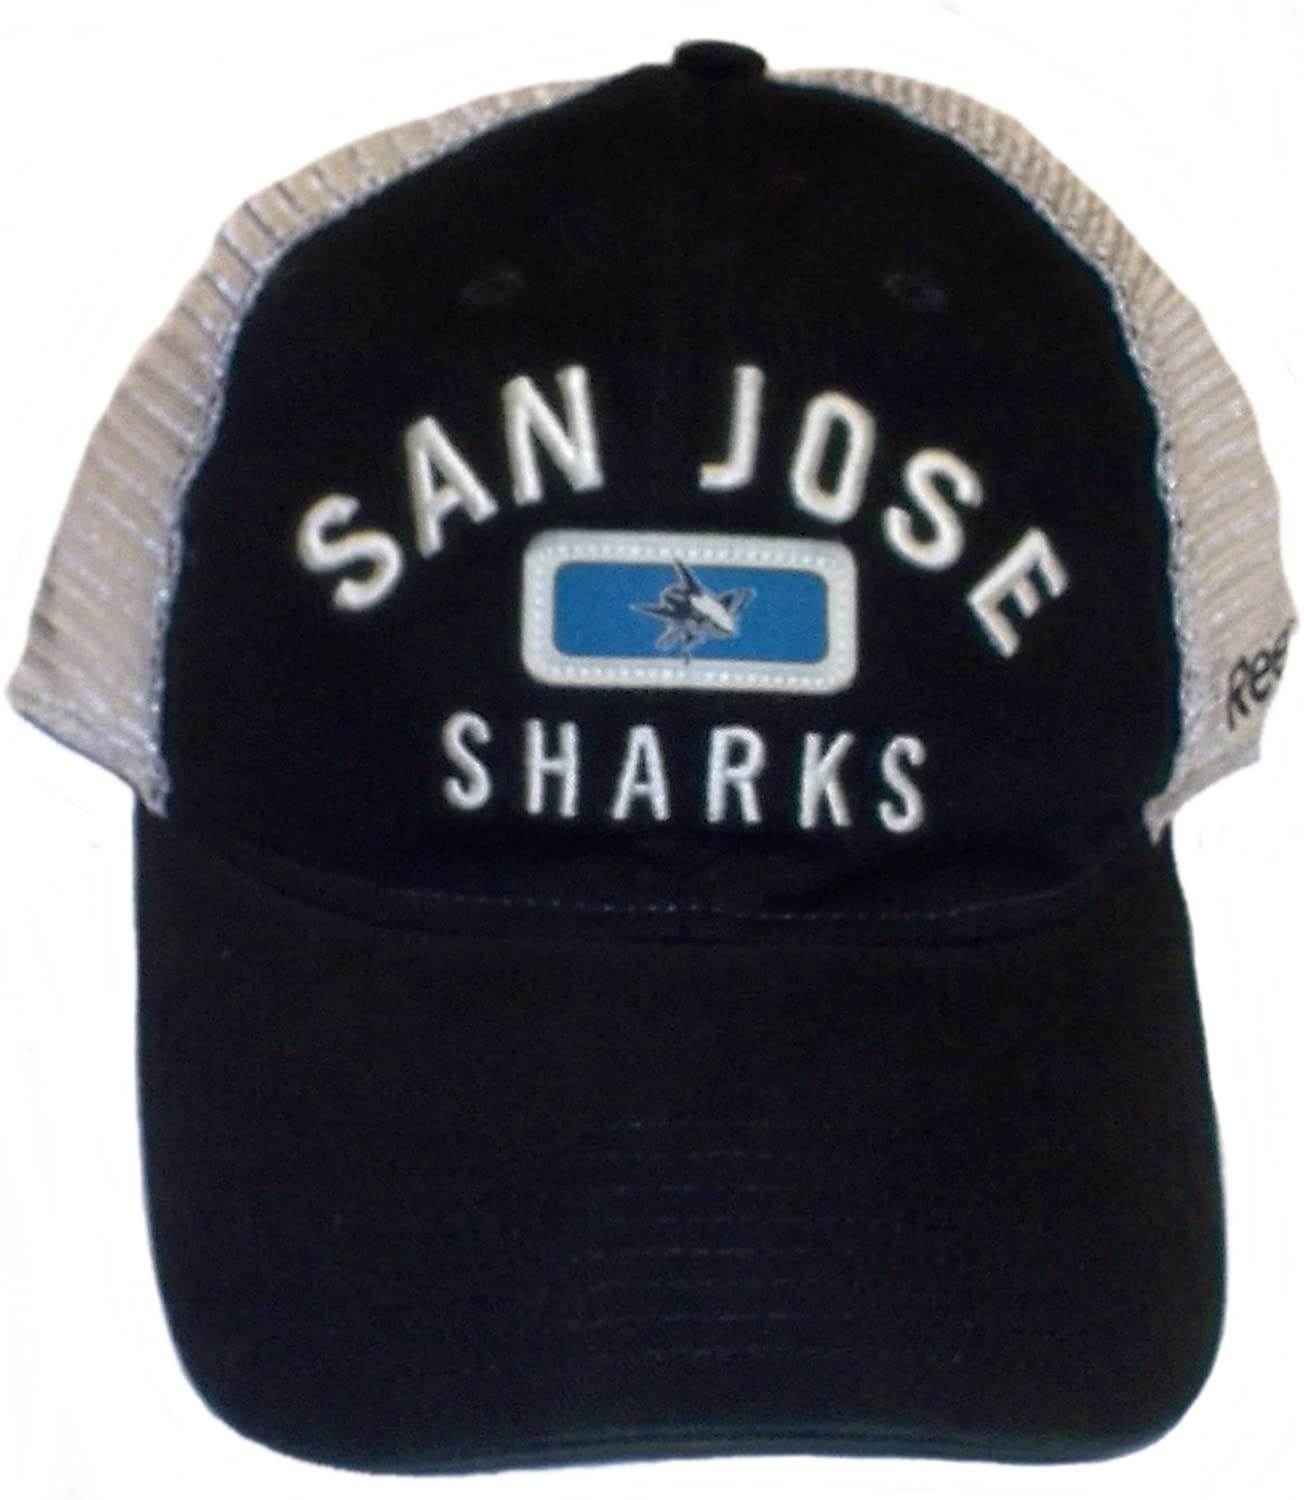 Reebok San Jose Sharks Black Basic Logo Wool Blend Adjustable Hat//Cap